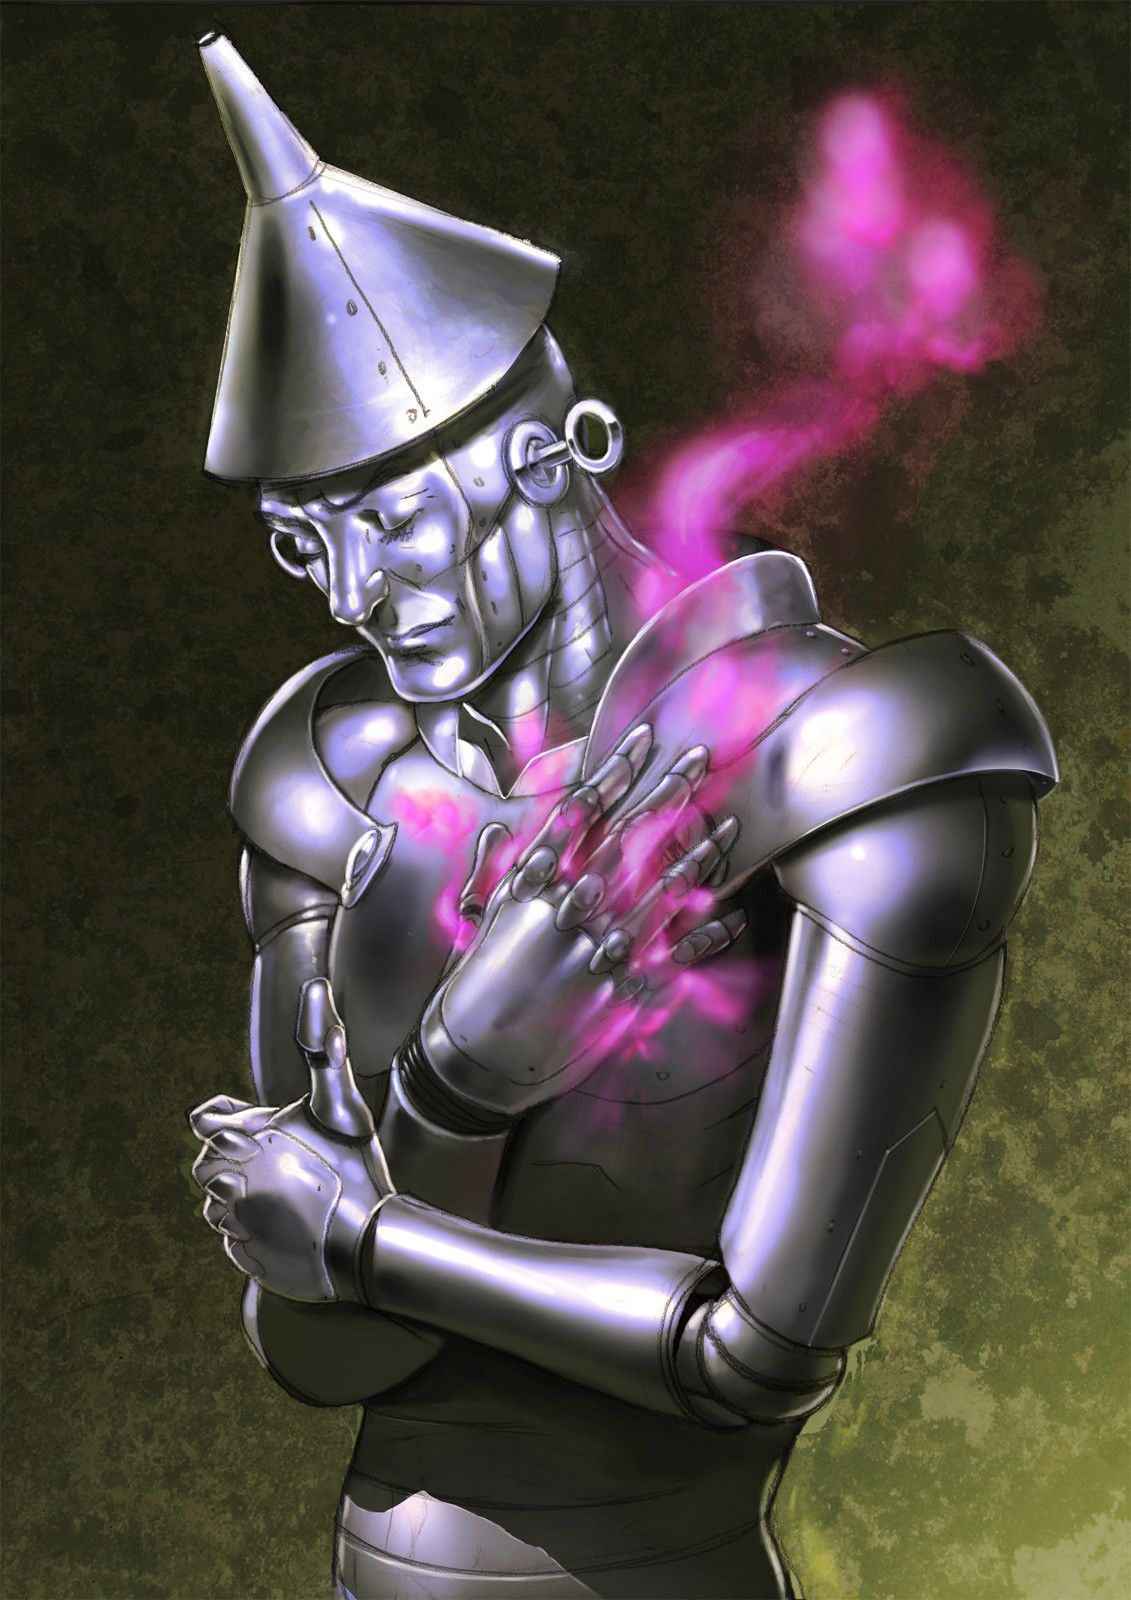 Realistic tinman. He's the poorest of them all. Not